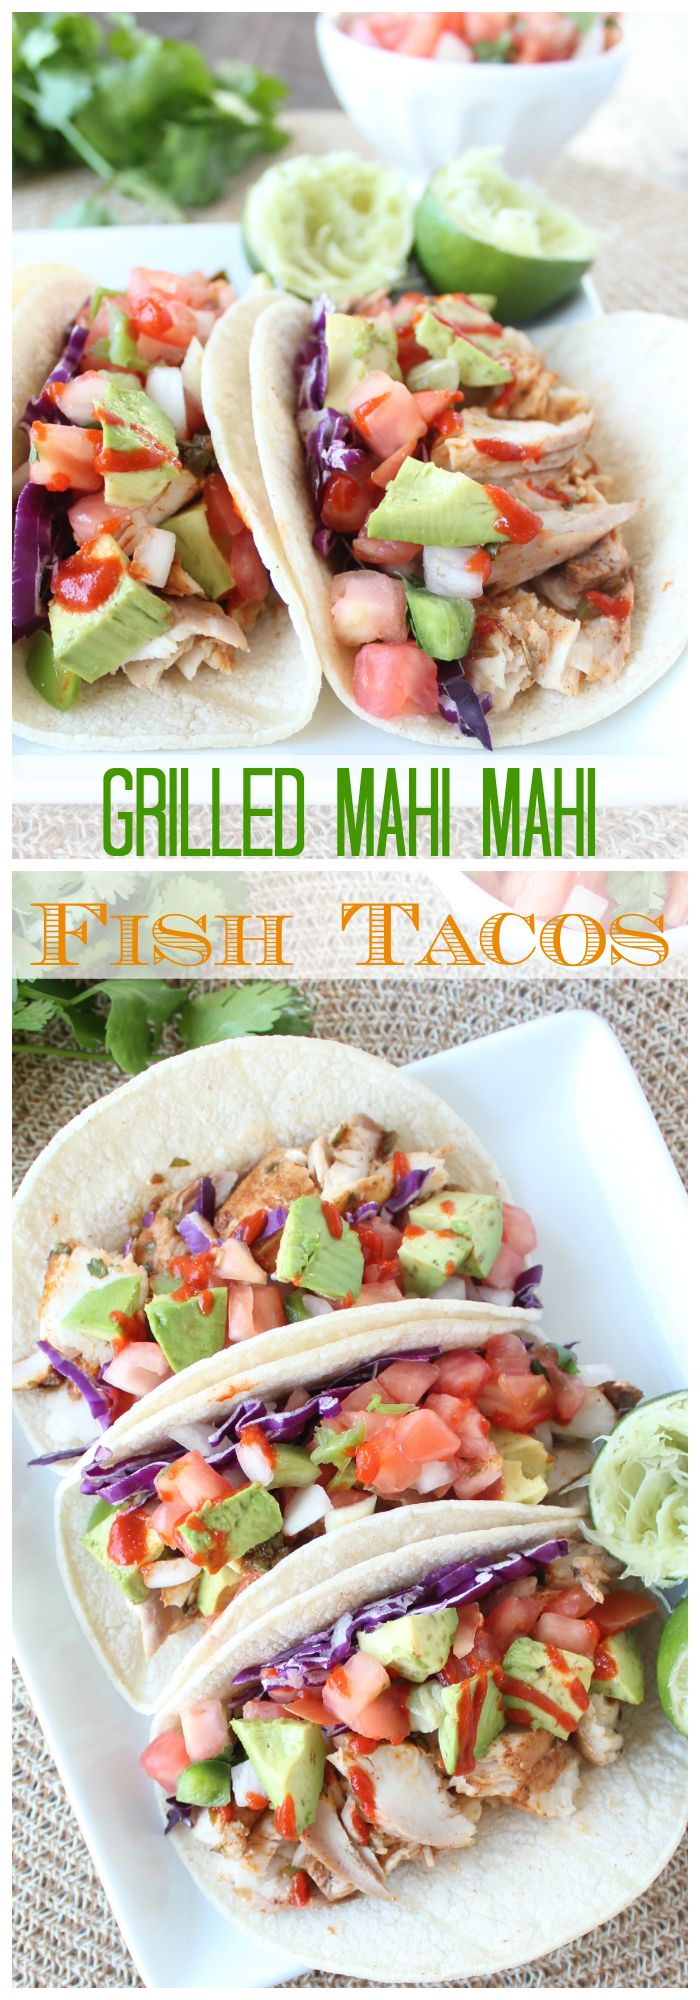 Cilantro Lime Jalapeno Mahi Mahi Fish Tacos Grilled on the #WorldMarket Mini BBQ Grill